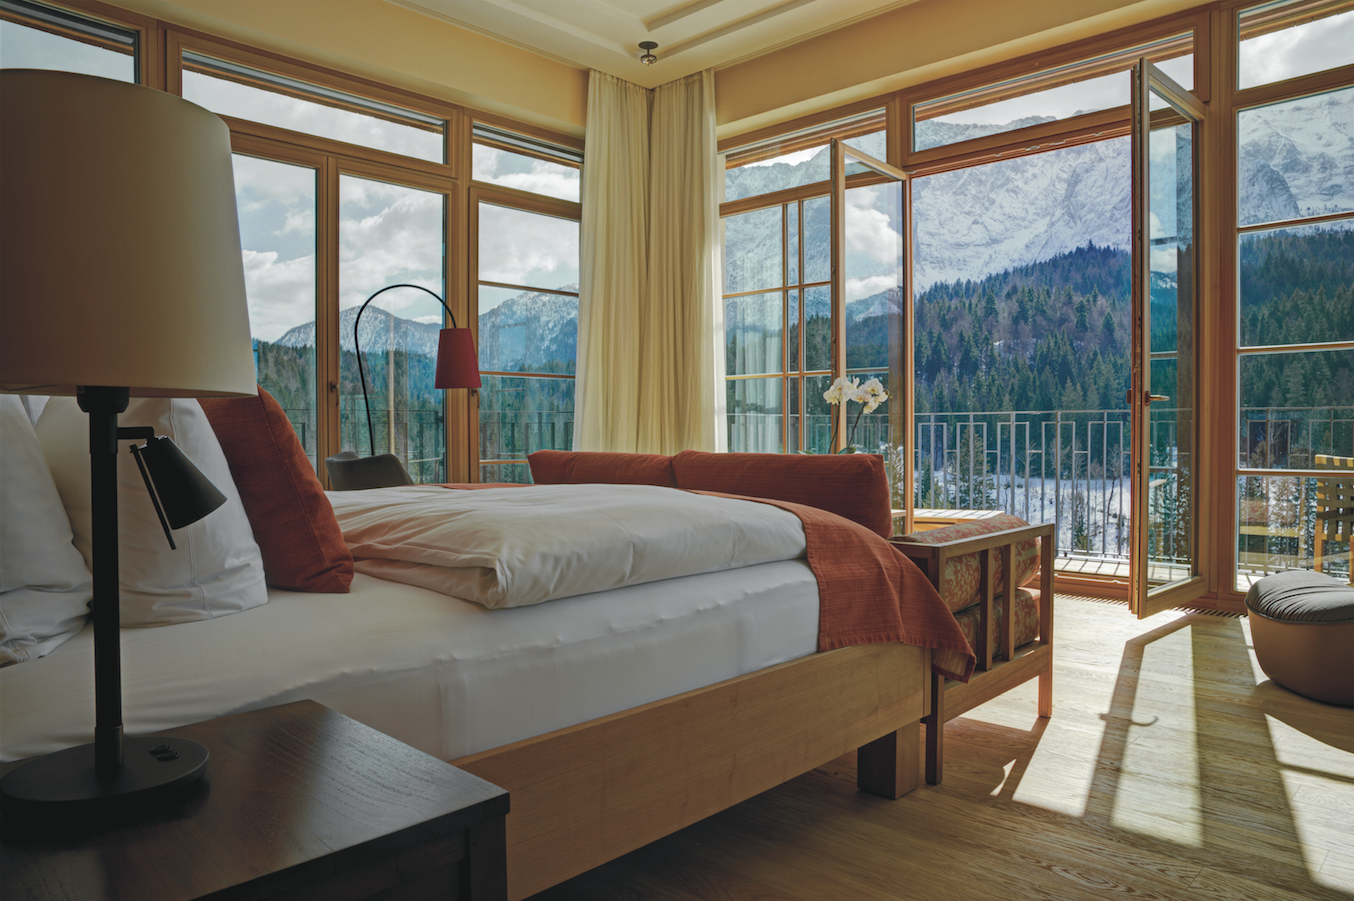 kaldewei per l hotel schloss elmau retreat in germania area. Black Bedroom Furniture Sets. Home Design Ideas